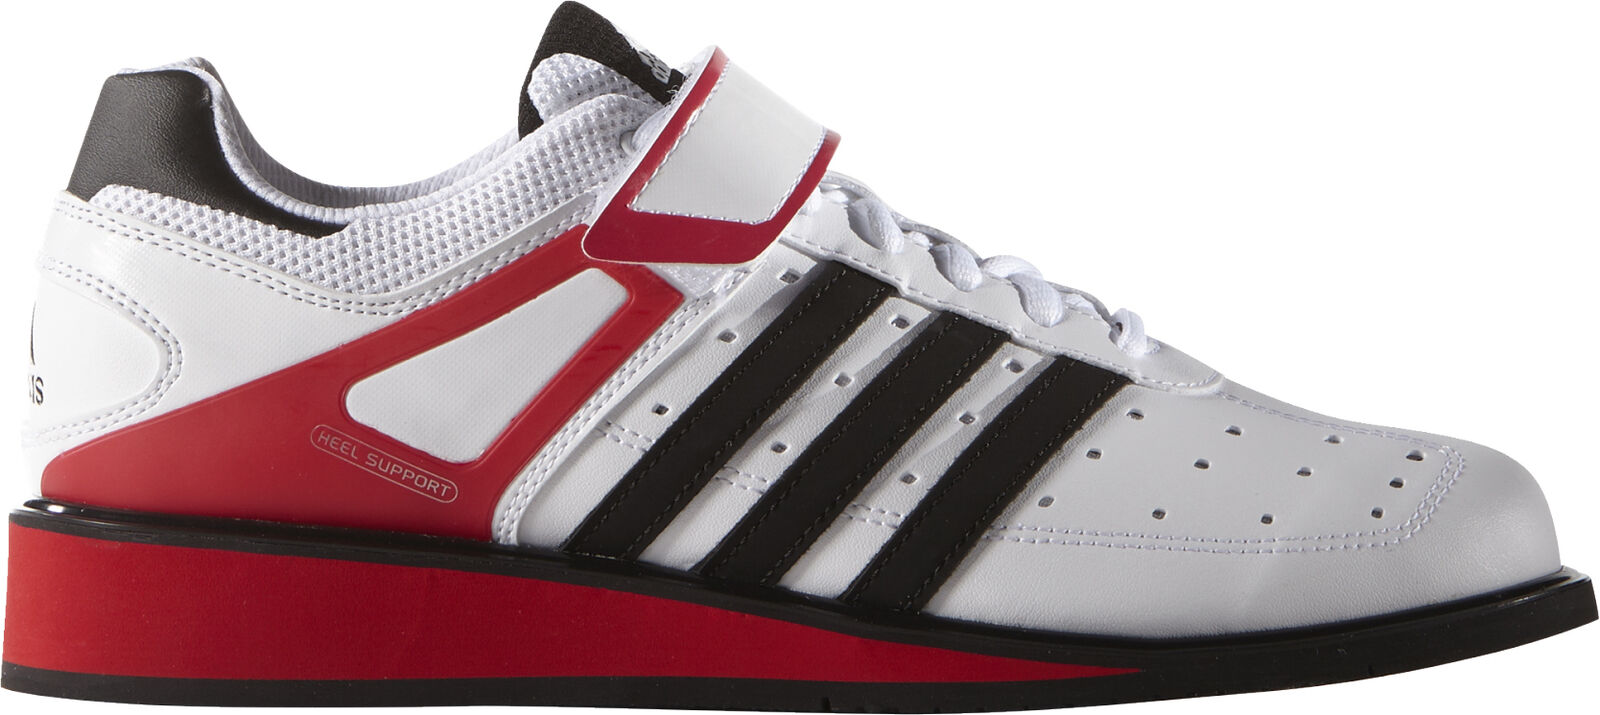 Adidas Power Perfect 2.0 Mens Weight Lifting shoes - White